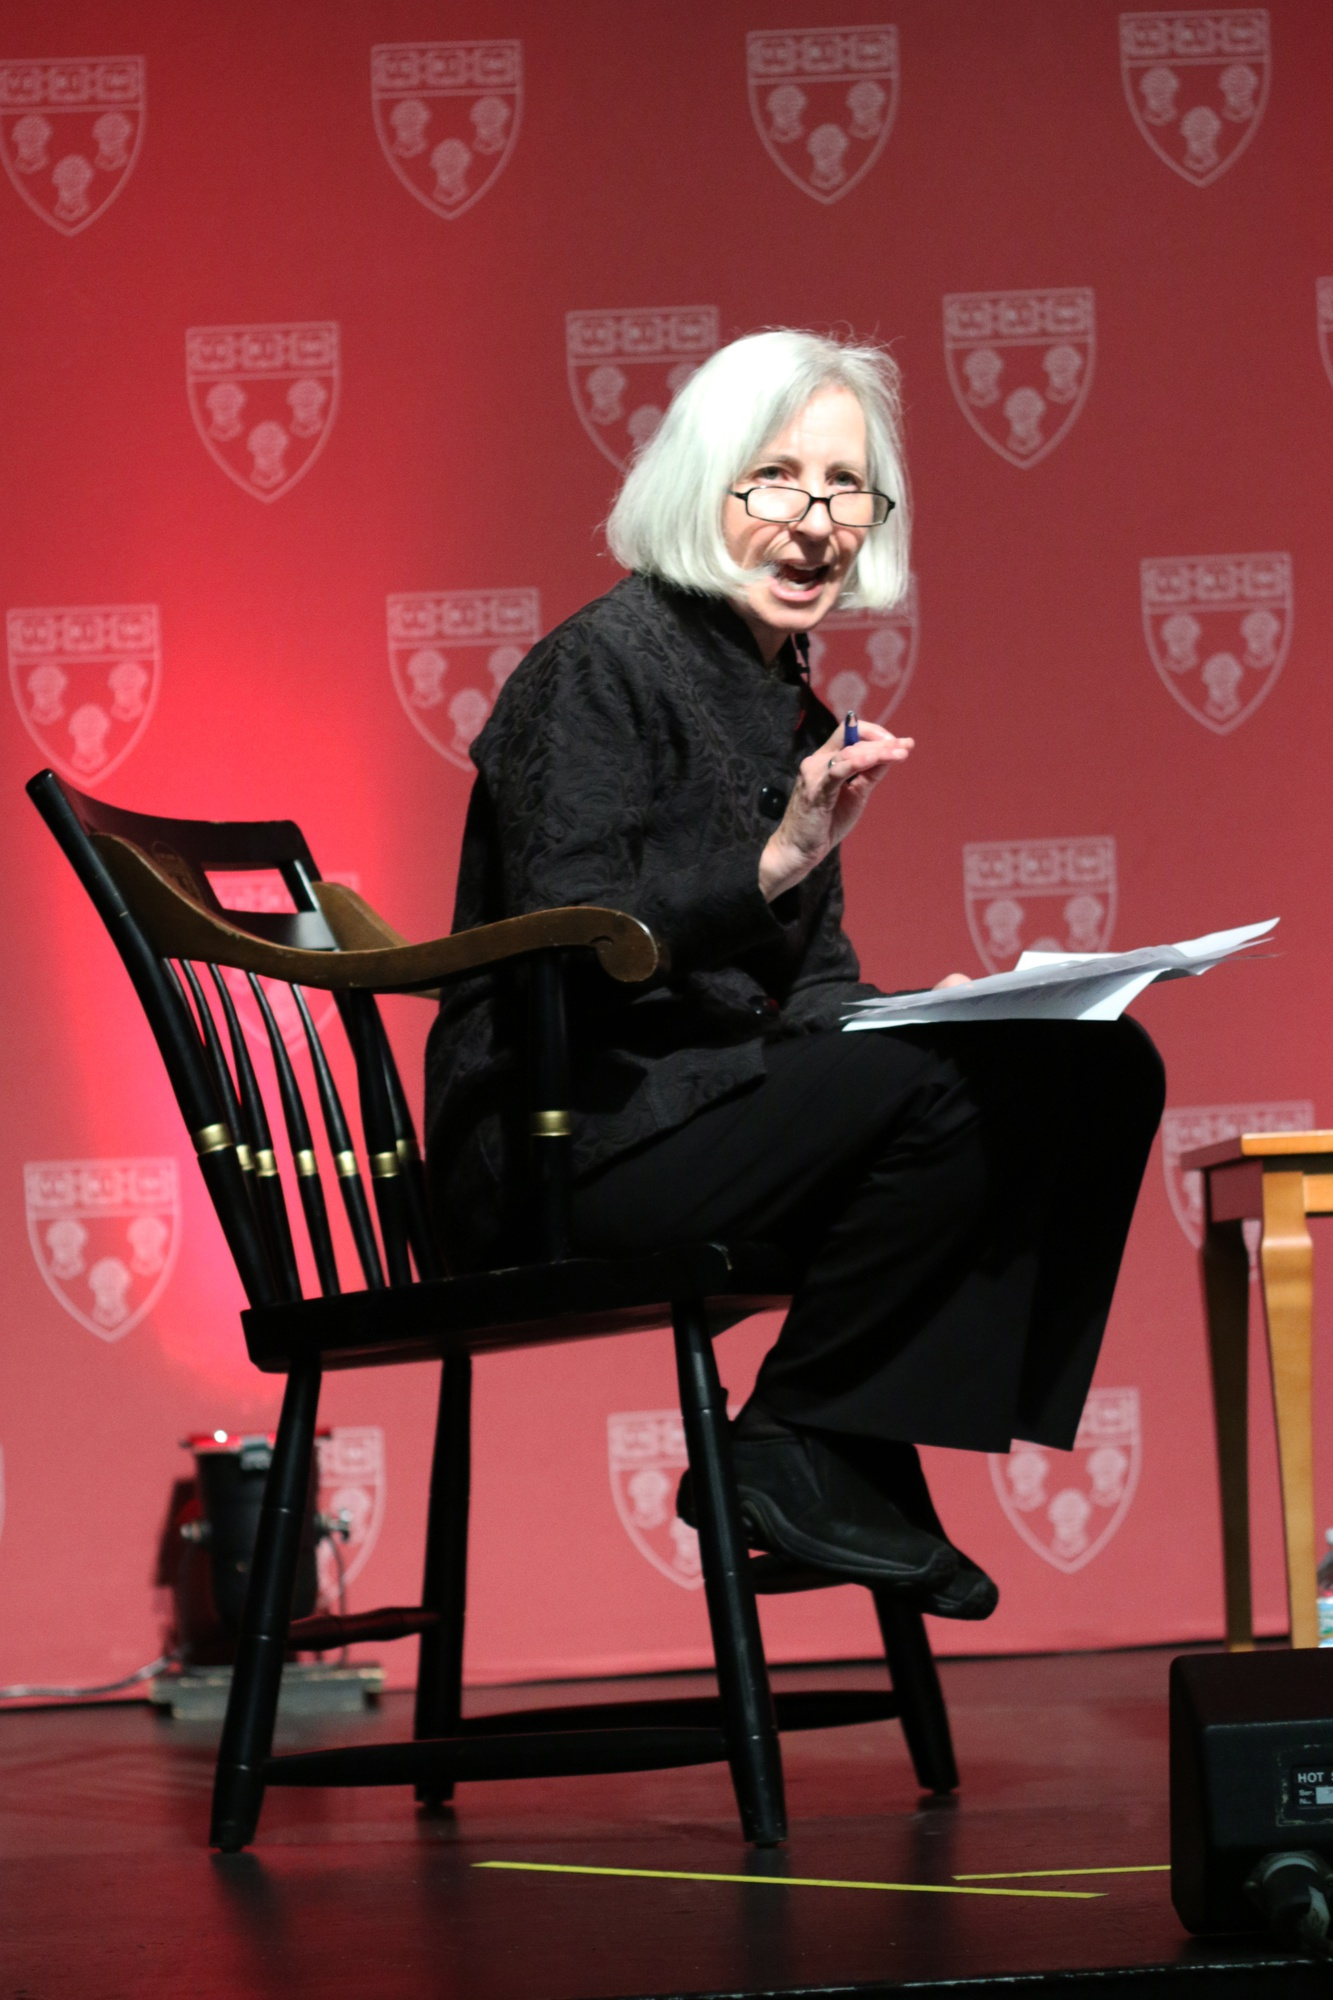 Harvard Law School Dean Martha L. Minow asks Senator Elizabeth A. Warren about the creation of the Consumer Financial Protection Bureau. Celebration 60 celebrates the 60th anniversary of the first women graduates of Harvard Law School.